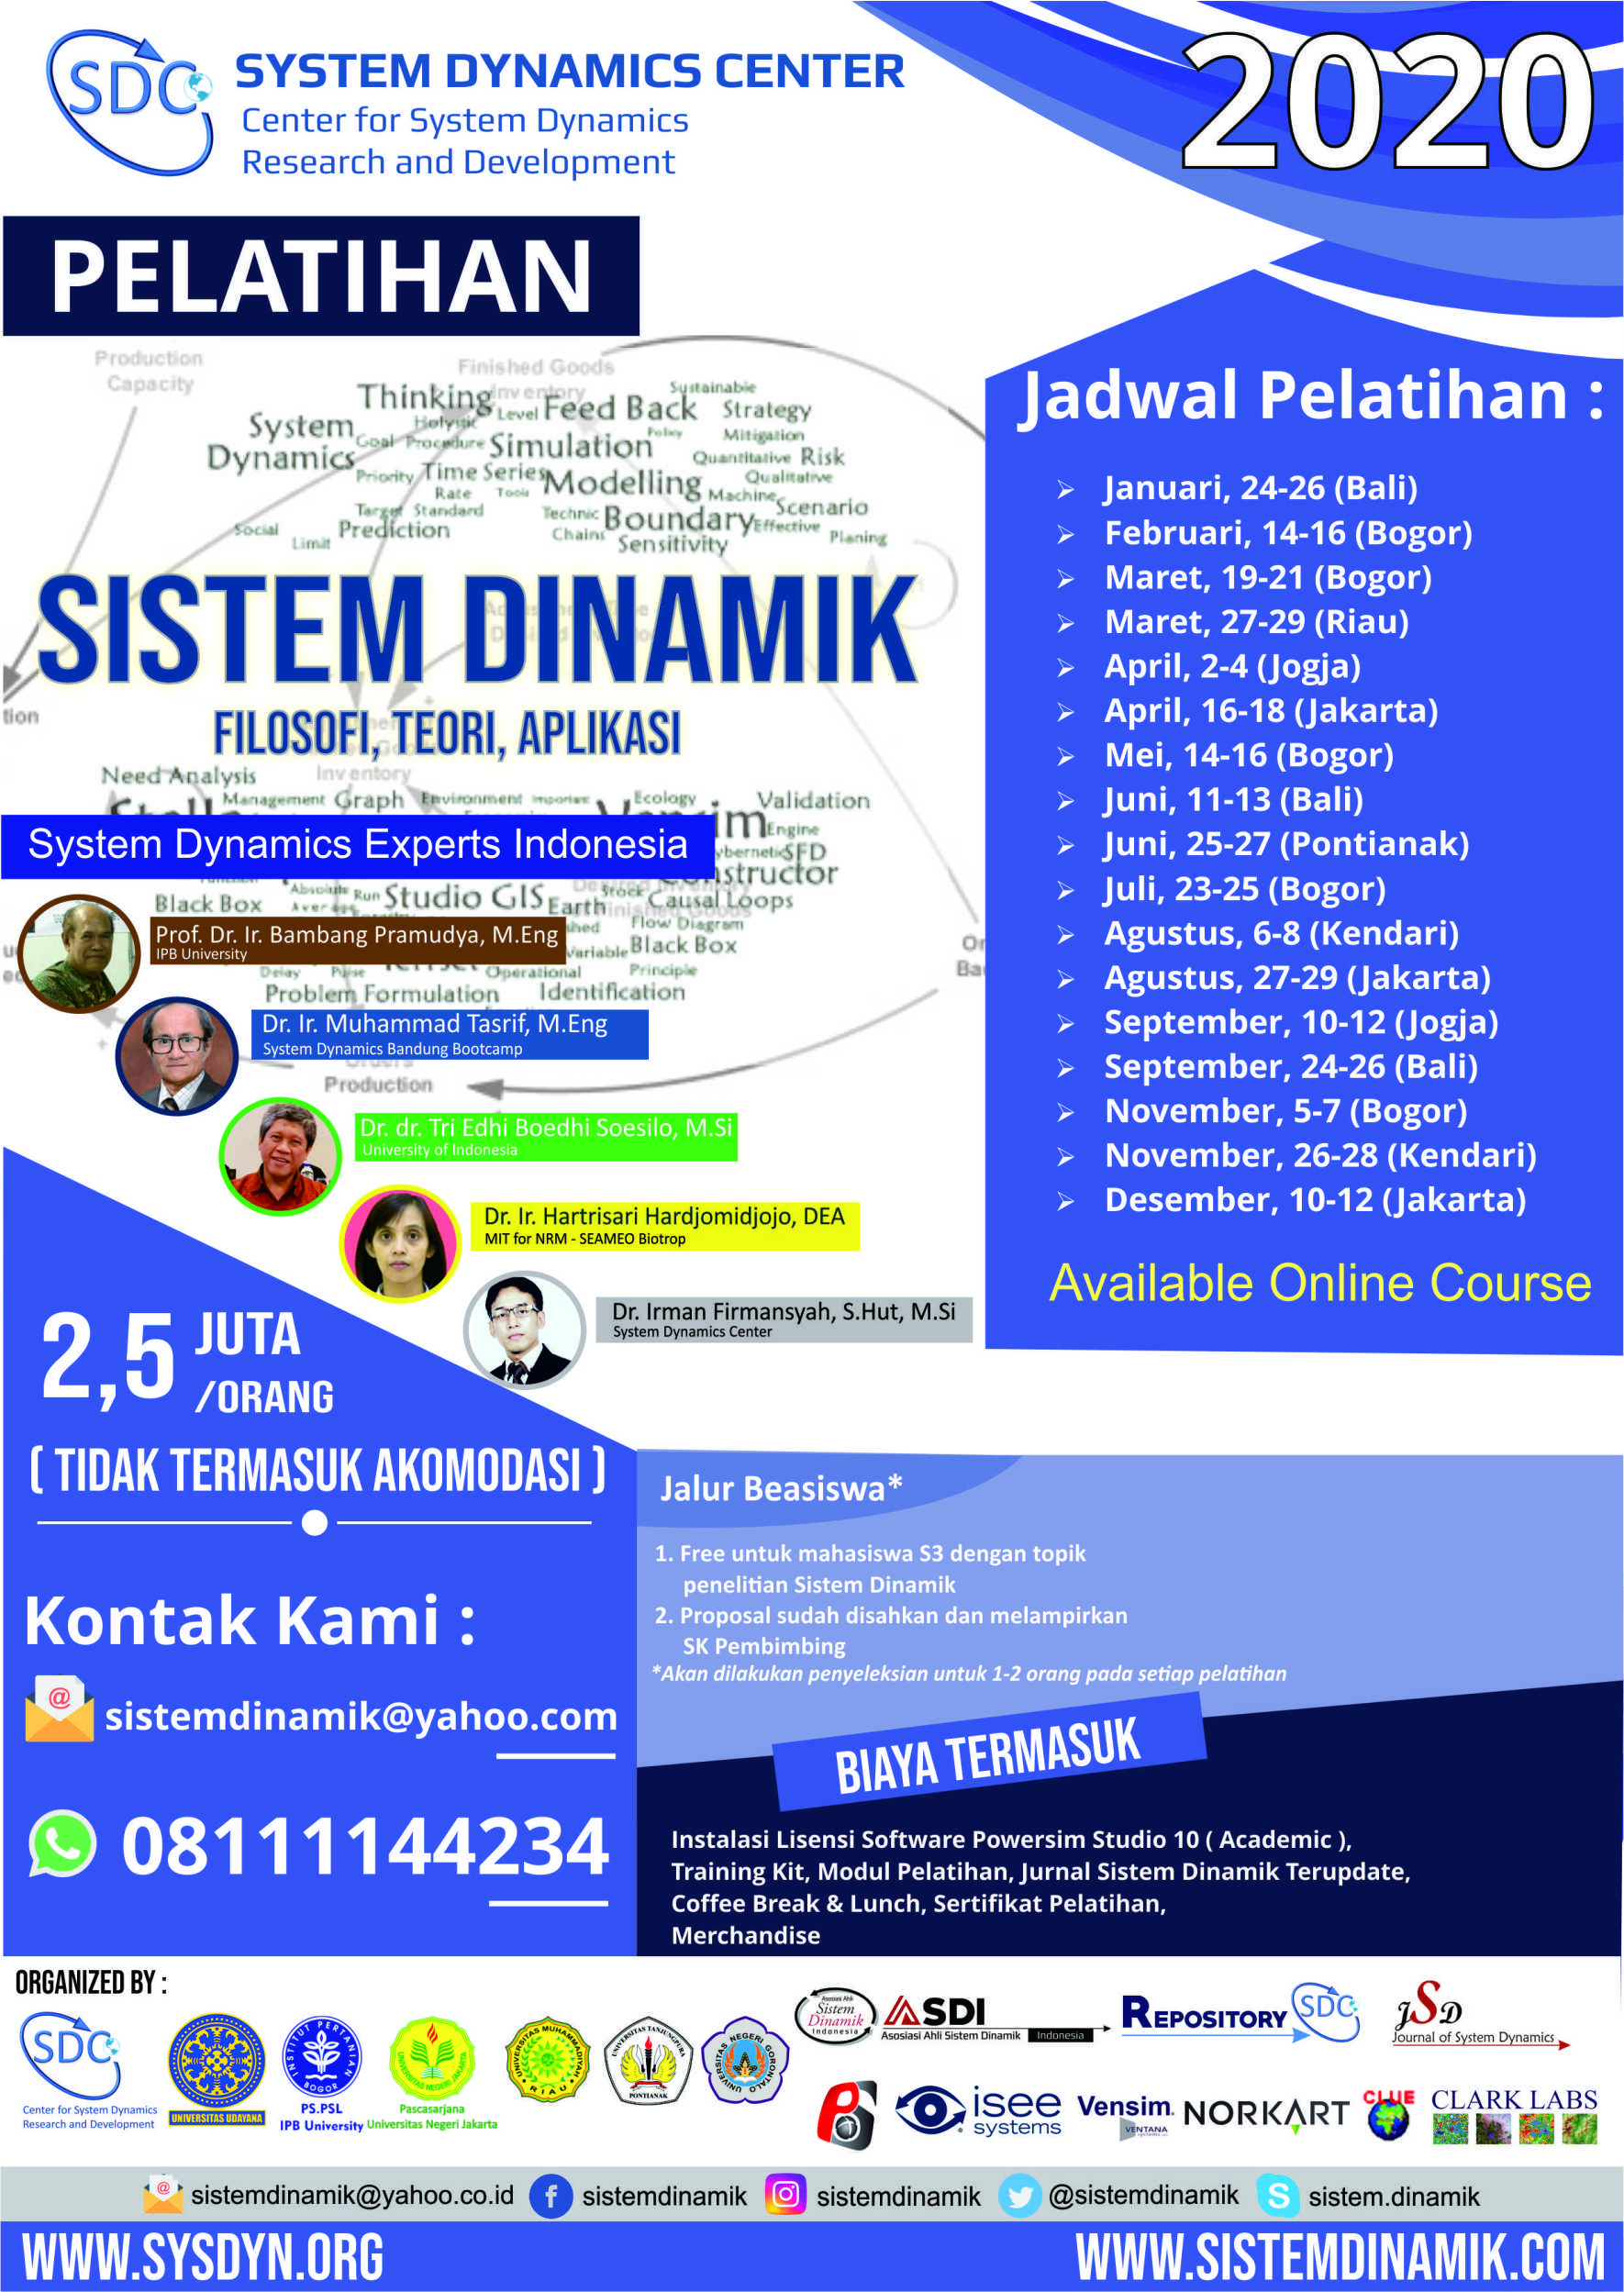 //sysdyn.org/wp-content/uploads/2020/02/Jadwal-System-Dynamics_upload.jpg